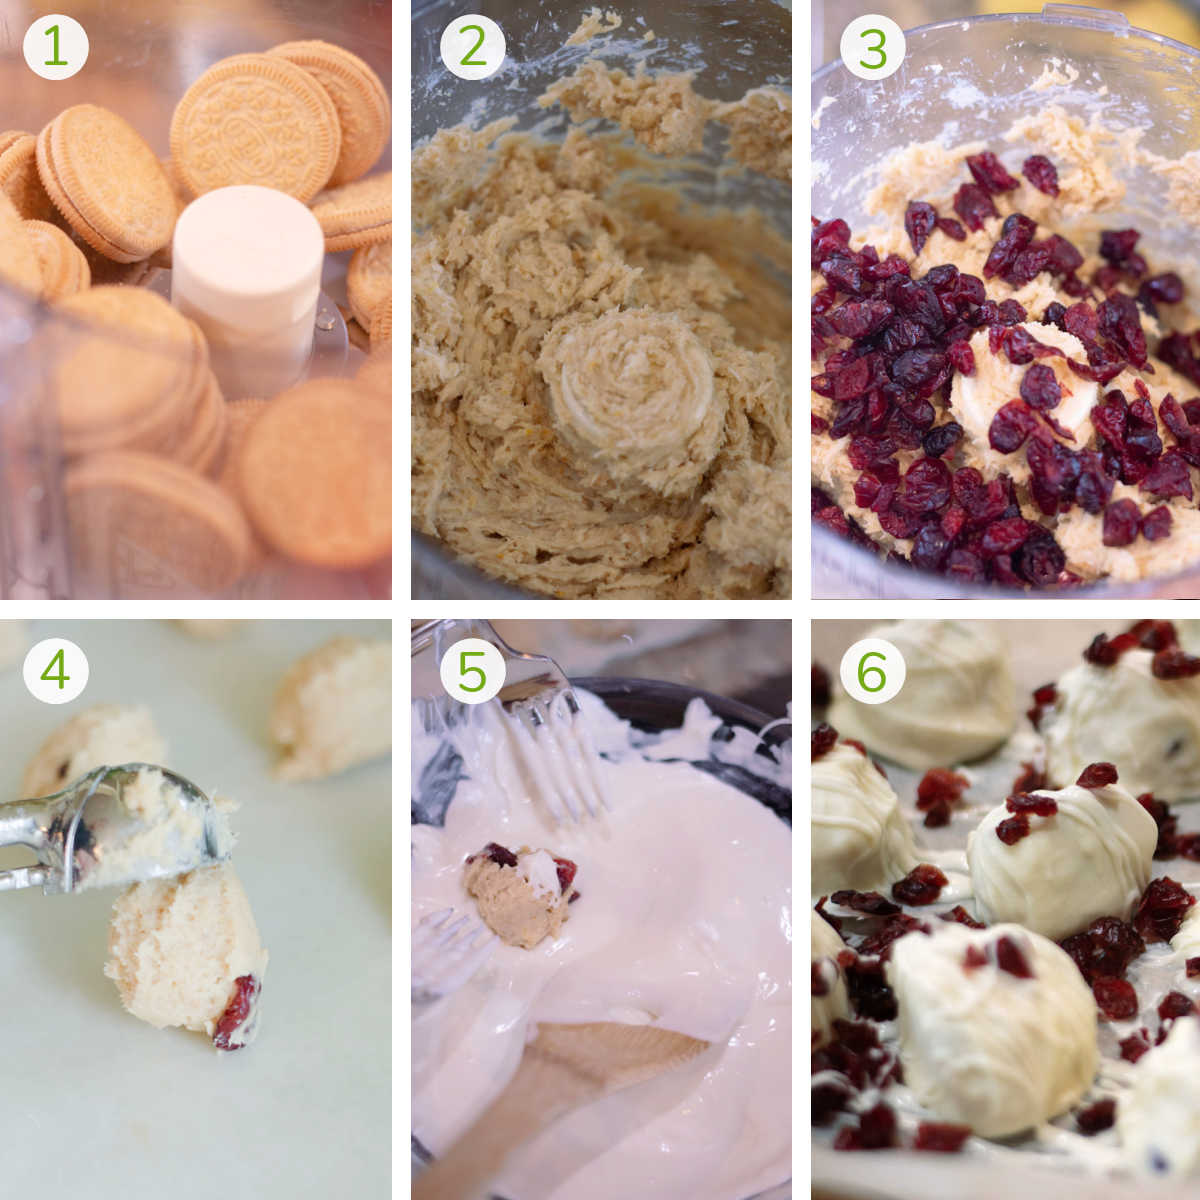 process photos showing mixing the oreos, adding cream cheese and cranberries, dipping in chocolate and toppings.